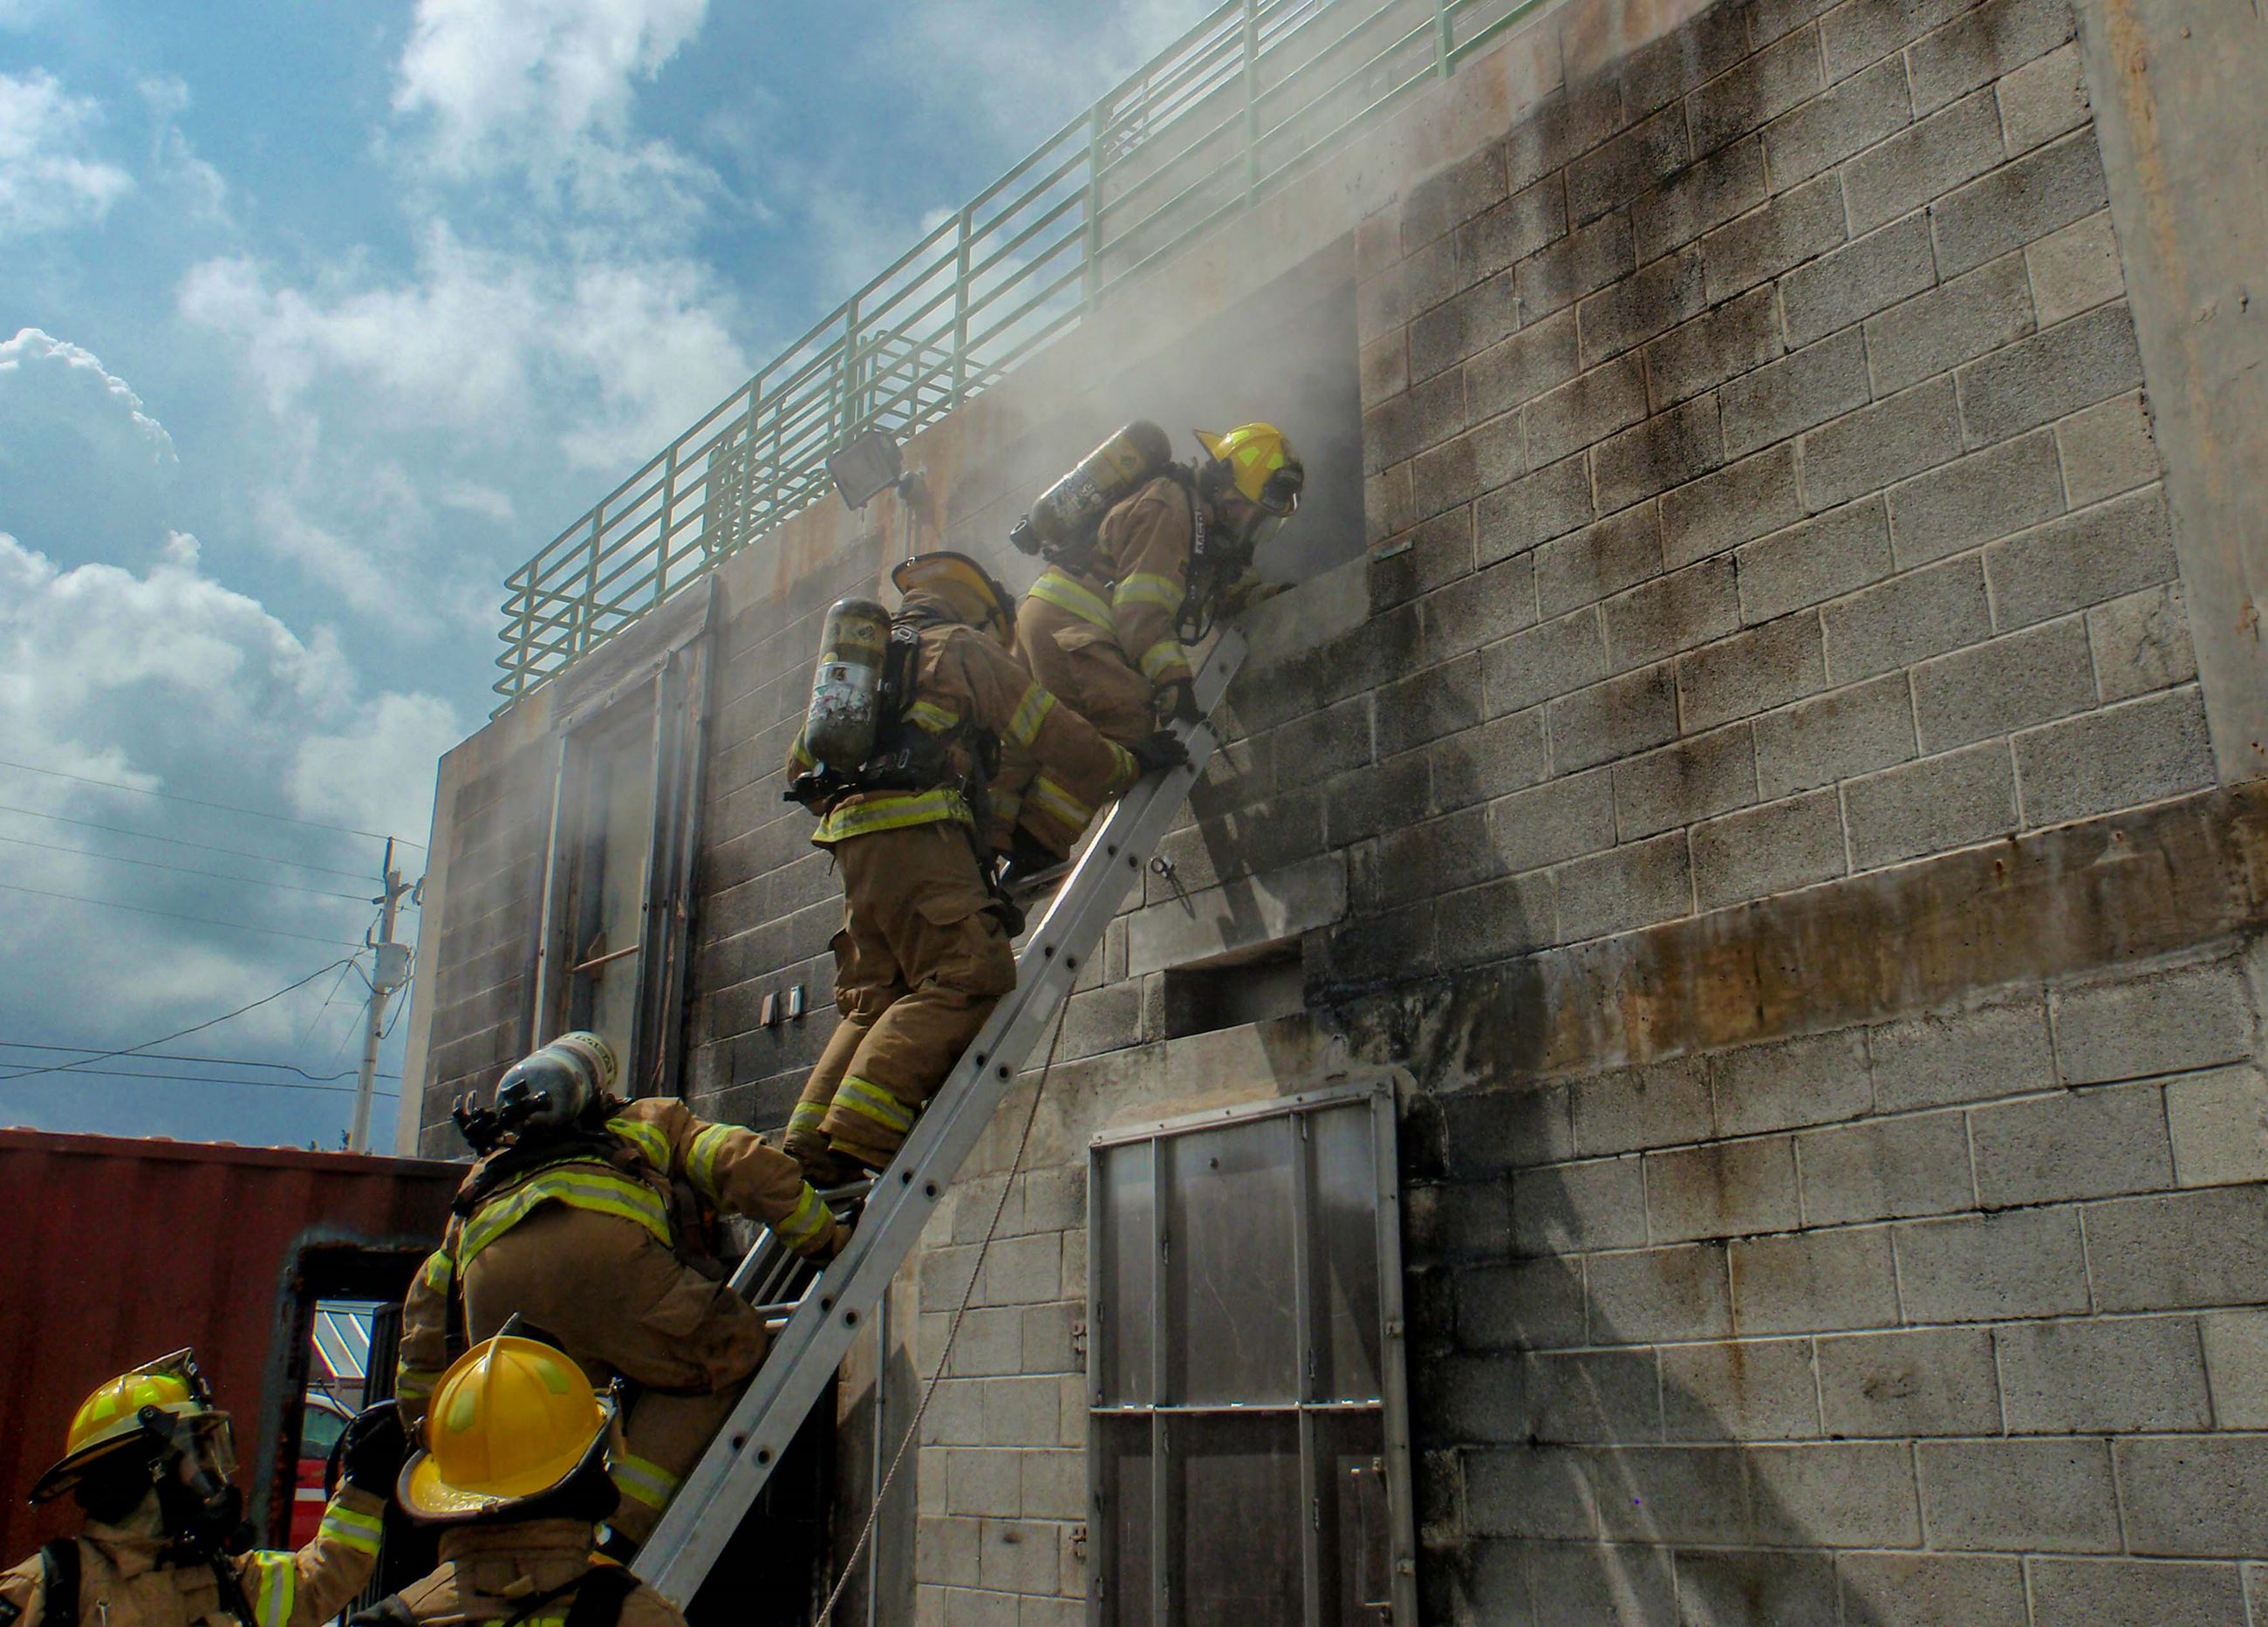 People training to become firefighters at Joe London Fire Rescue Training Academy LR-4